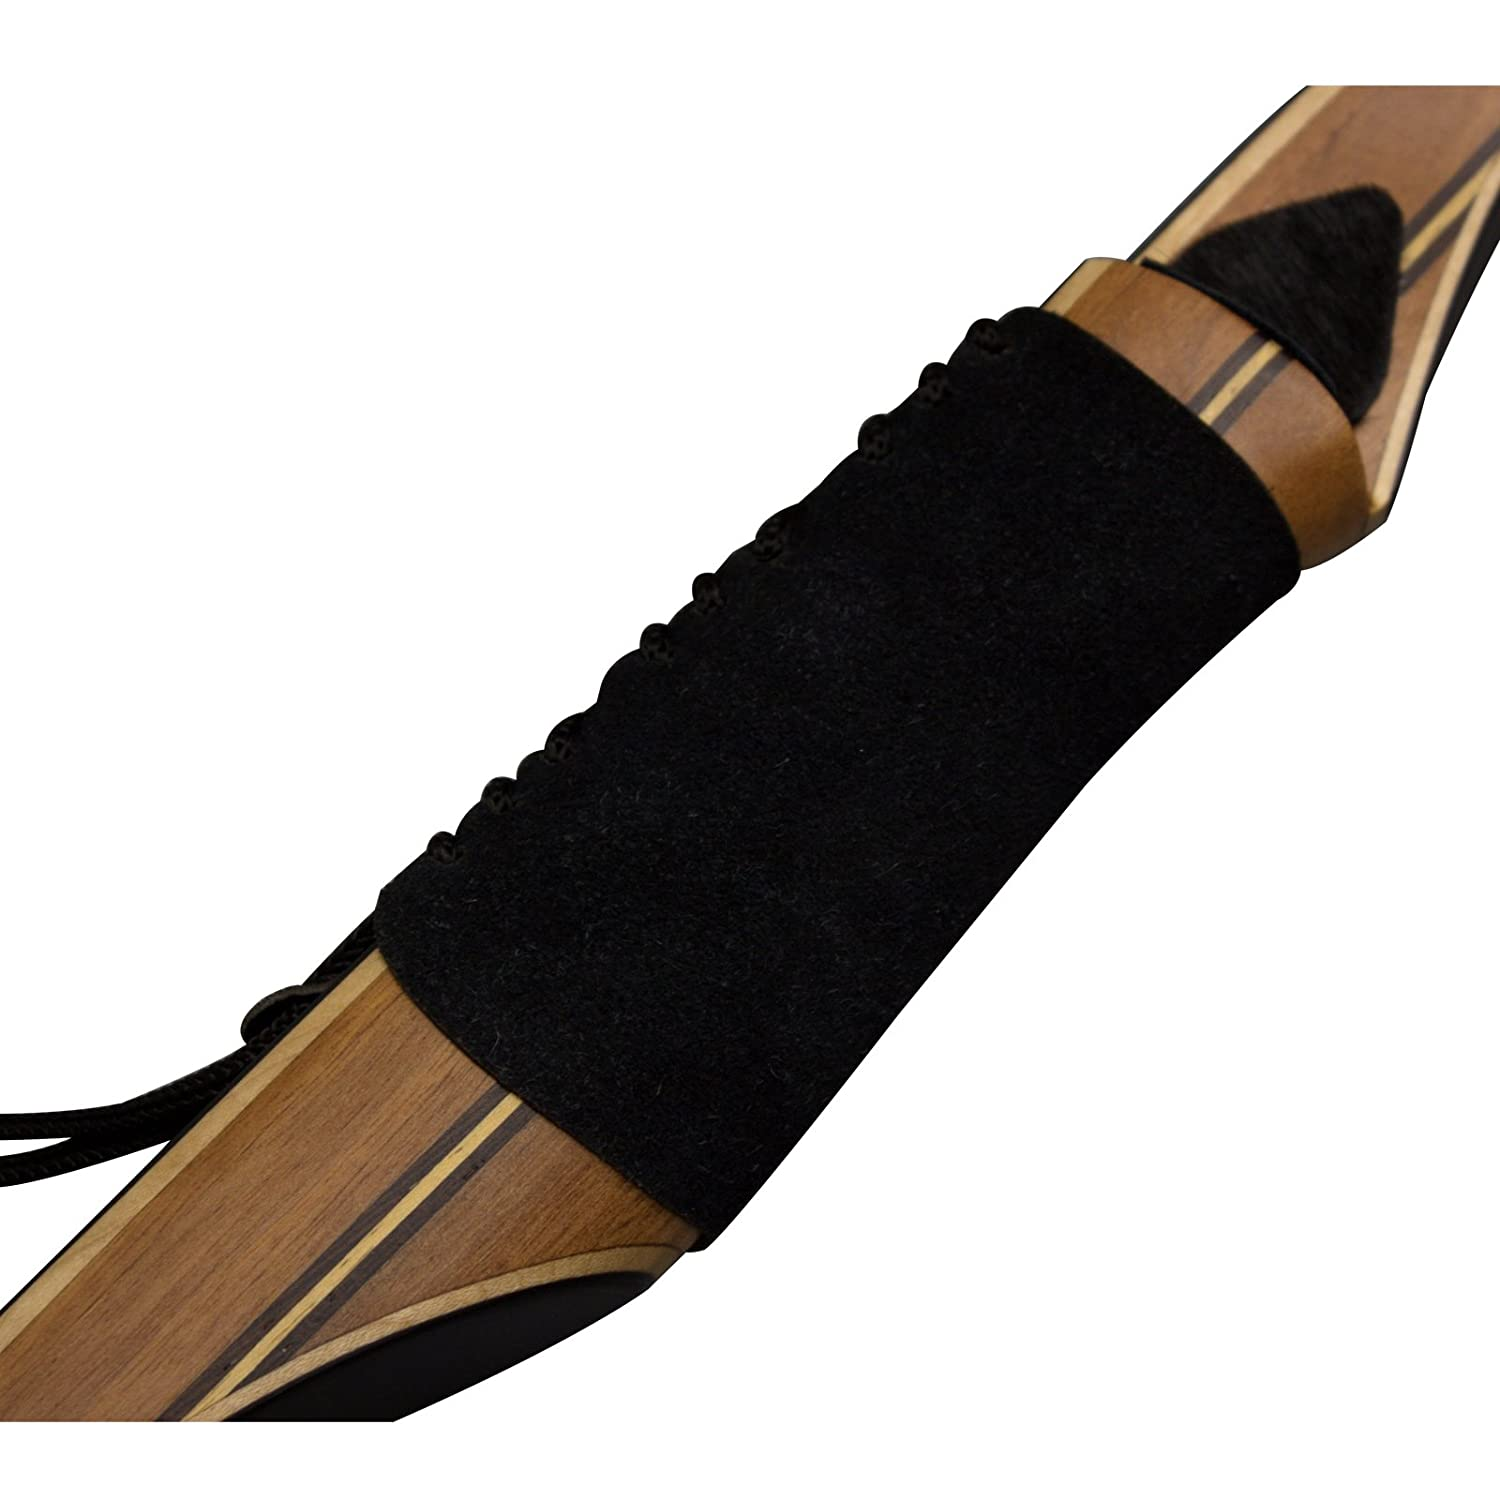 Southland Archery Supply SAS Pioneer Traditional Wood Long Bow